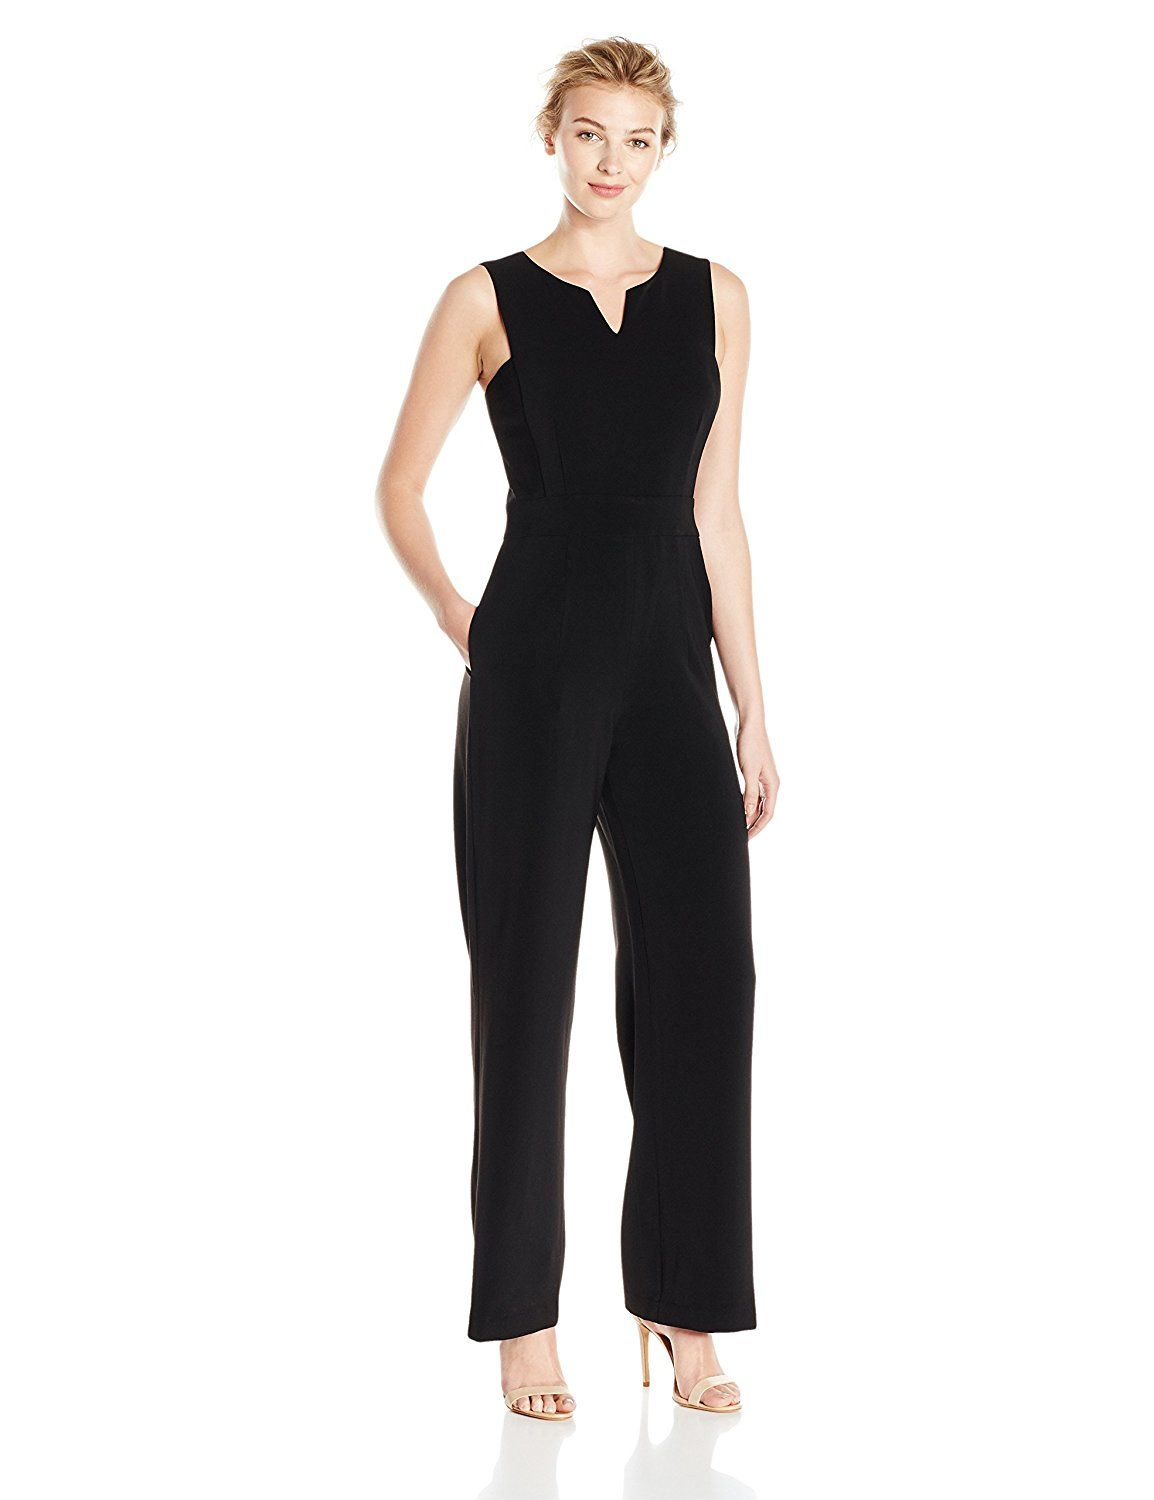 76b68091c120 Lark & Ro Women's Clean Front Jumpsuit at Amazon Women's Clothing store: